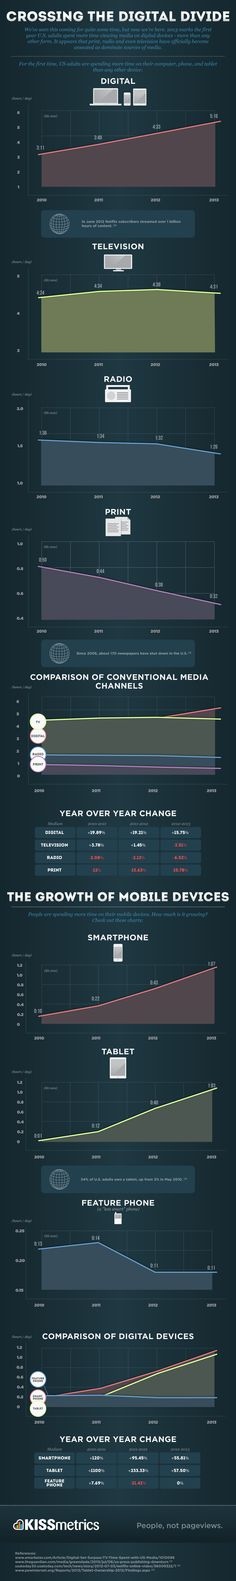 Crossing the Digital Divide (infographic)